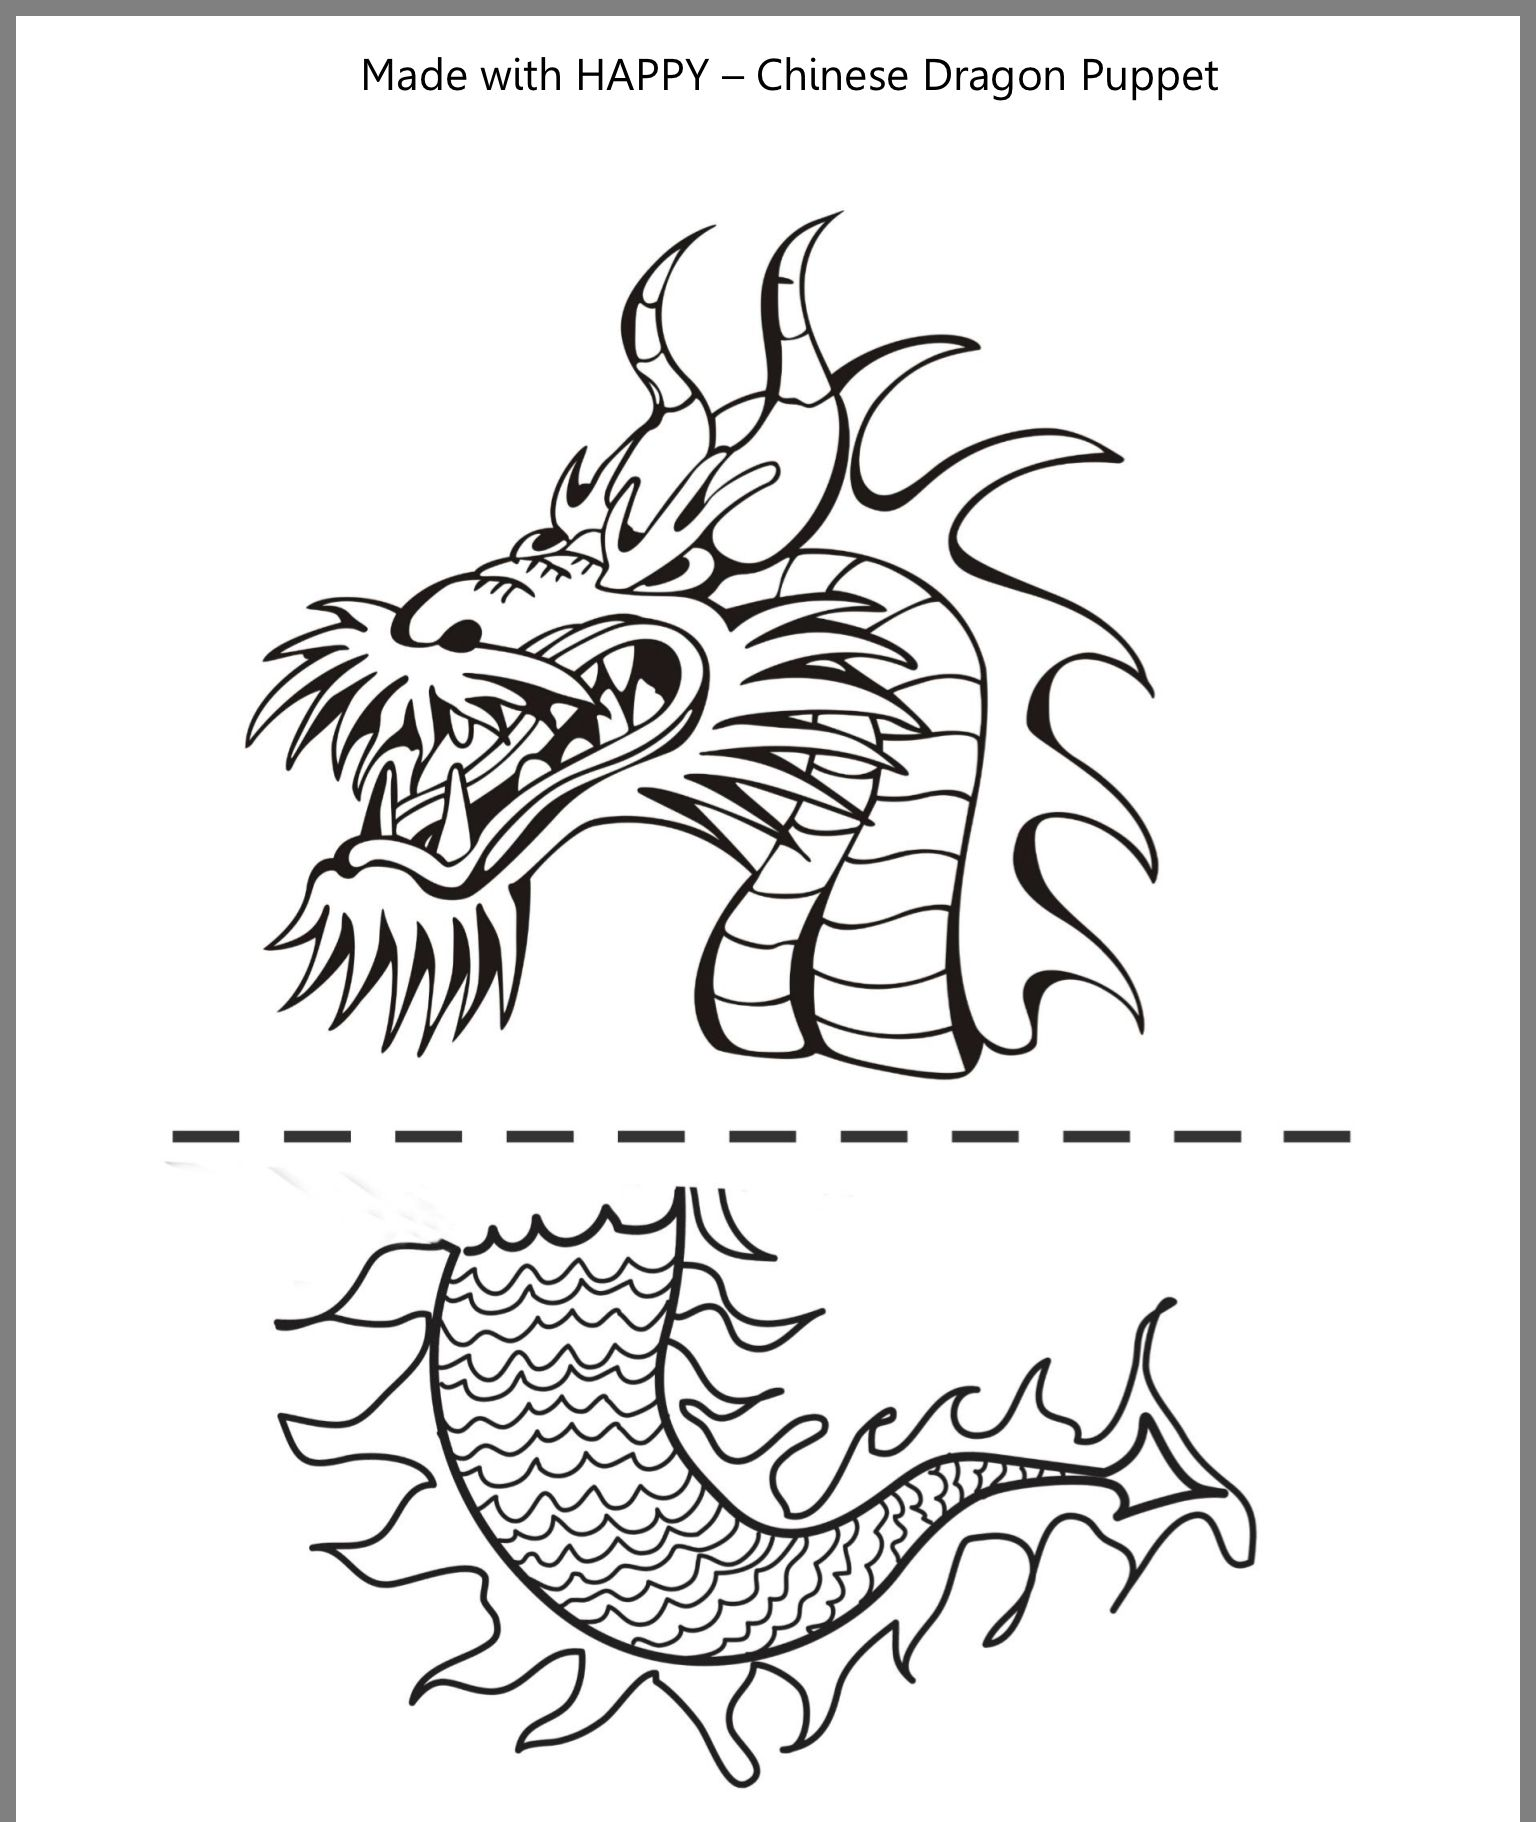 Pin by Melissa Stansfield on Chinese new year | Dragon ...